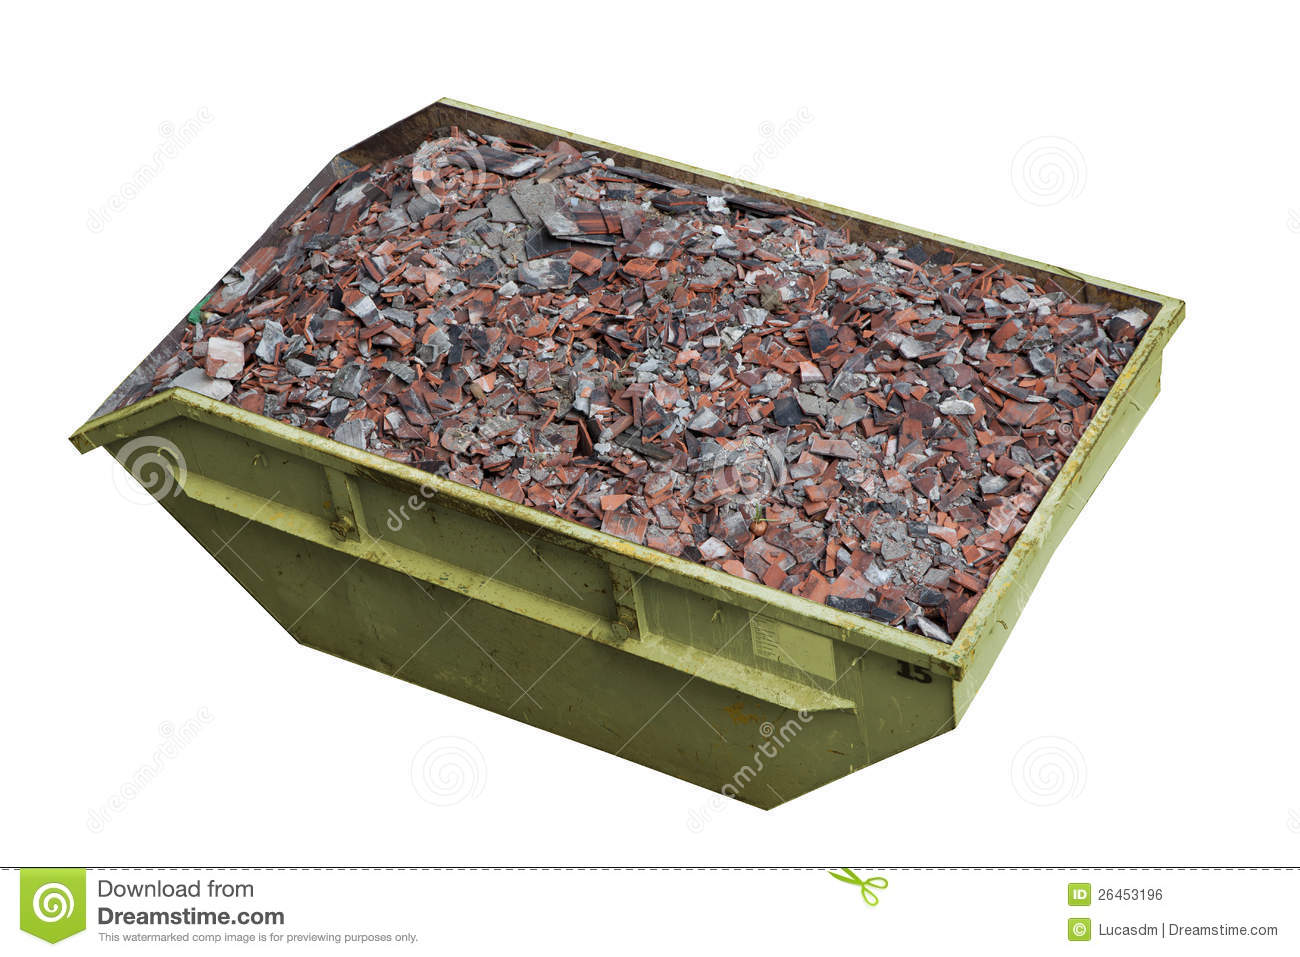 A Container Full Of Construction Debris Royalty Free Stock Image.